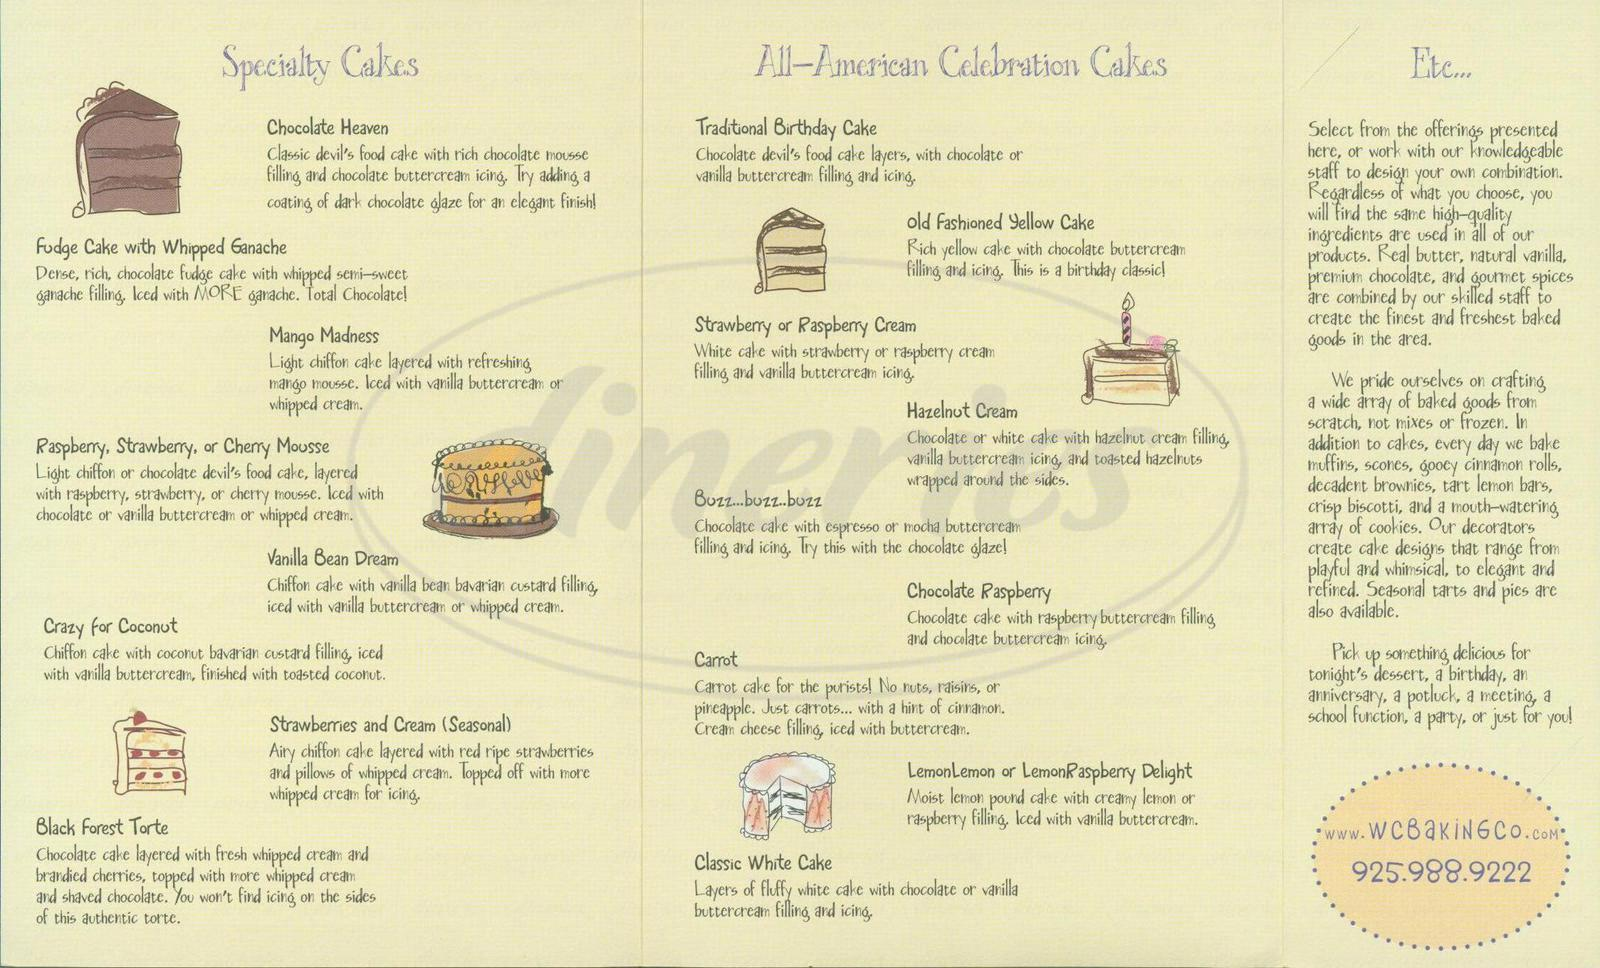 menu for Walnut Creek Baking Company